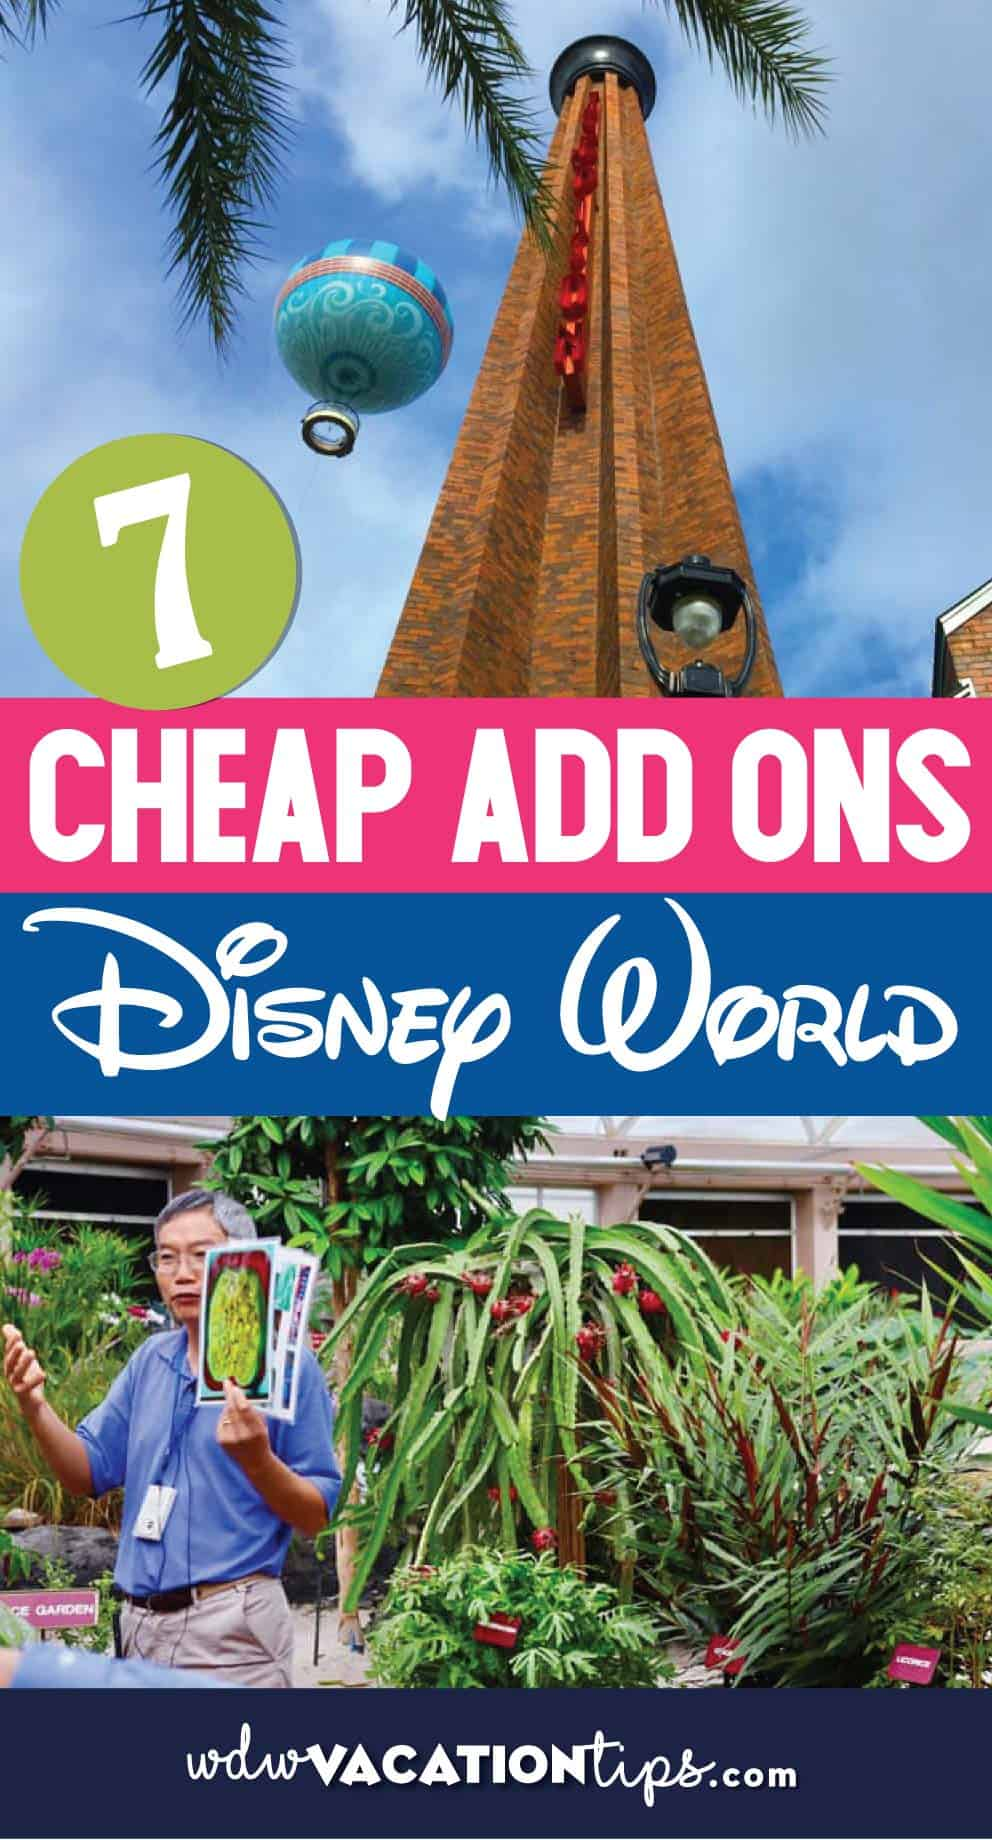 Surprisingly Cheap Disney Add Ons that are Awesome 1